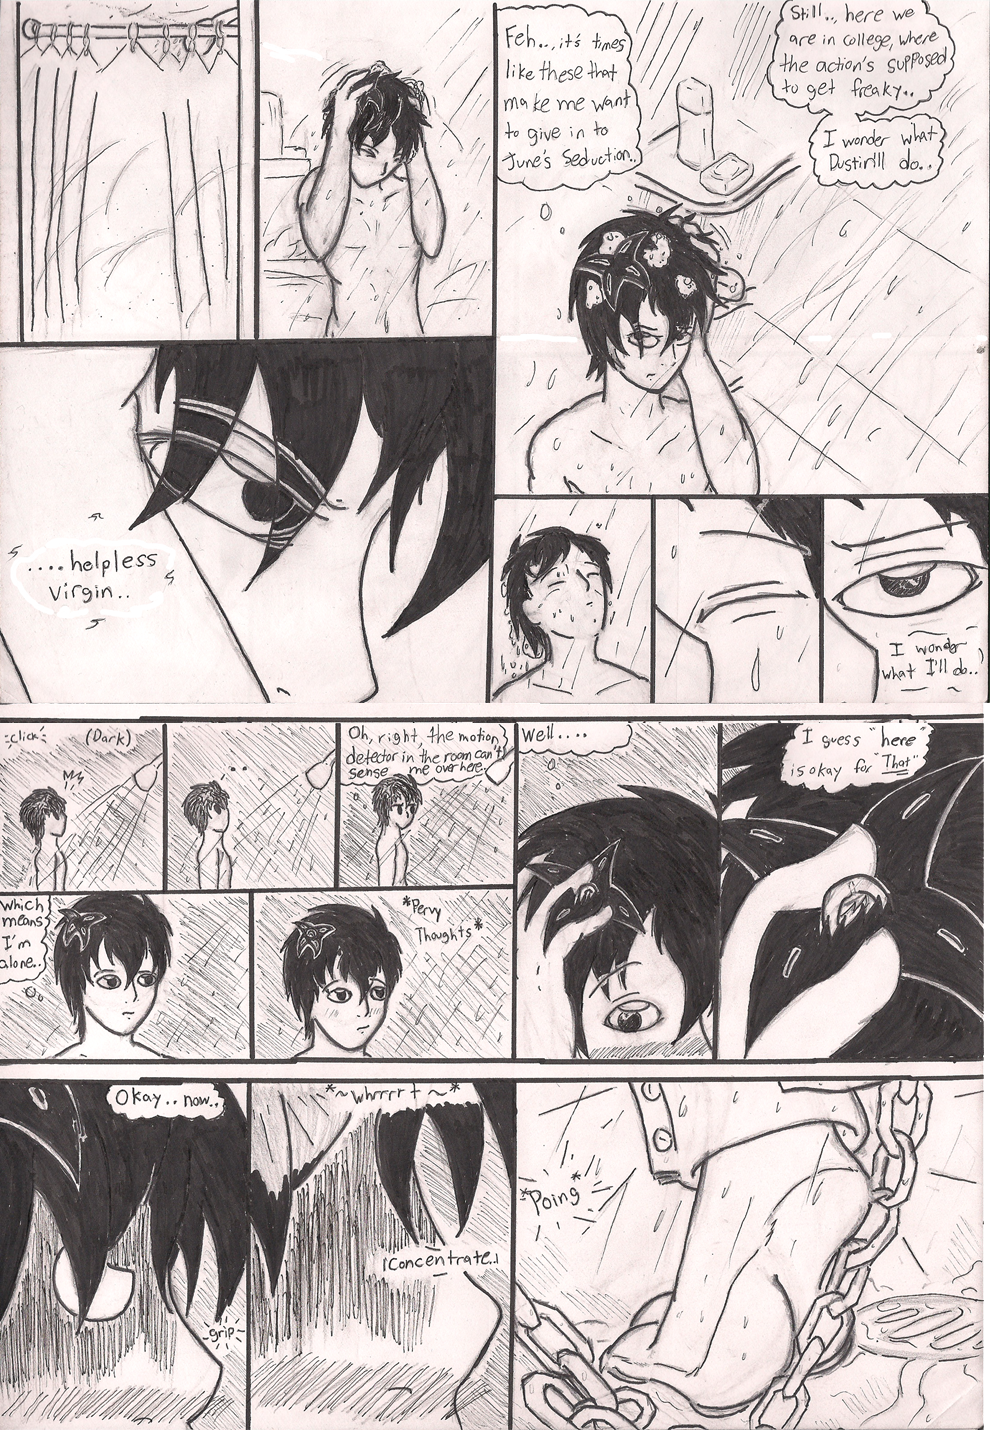 Comics and Artstuffs by Frist: Bol+-Wicked (+) - Page 6 Even_more_helpless_virgin_by_frist44-d34e3sv